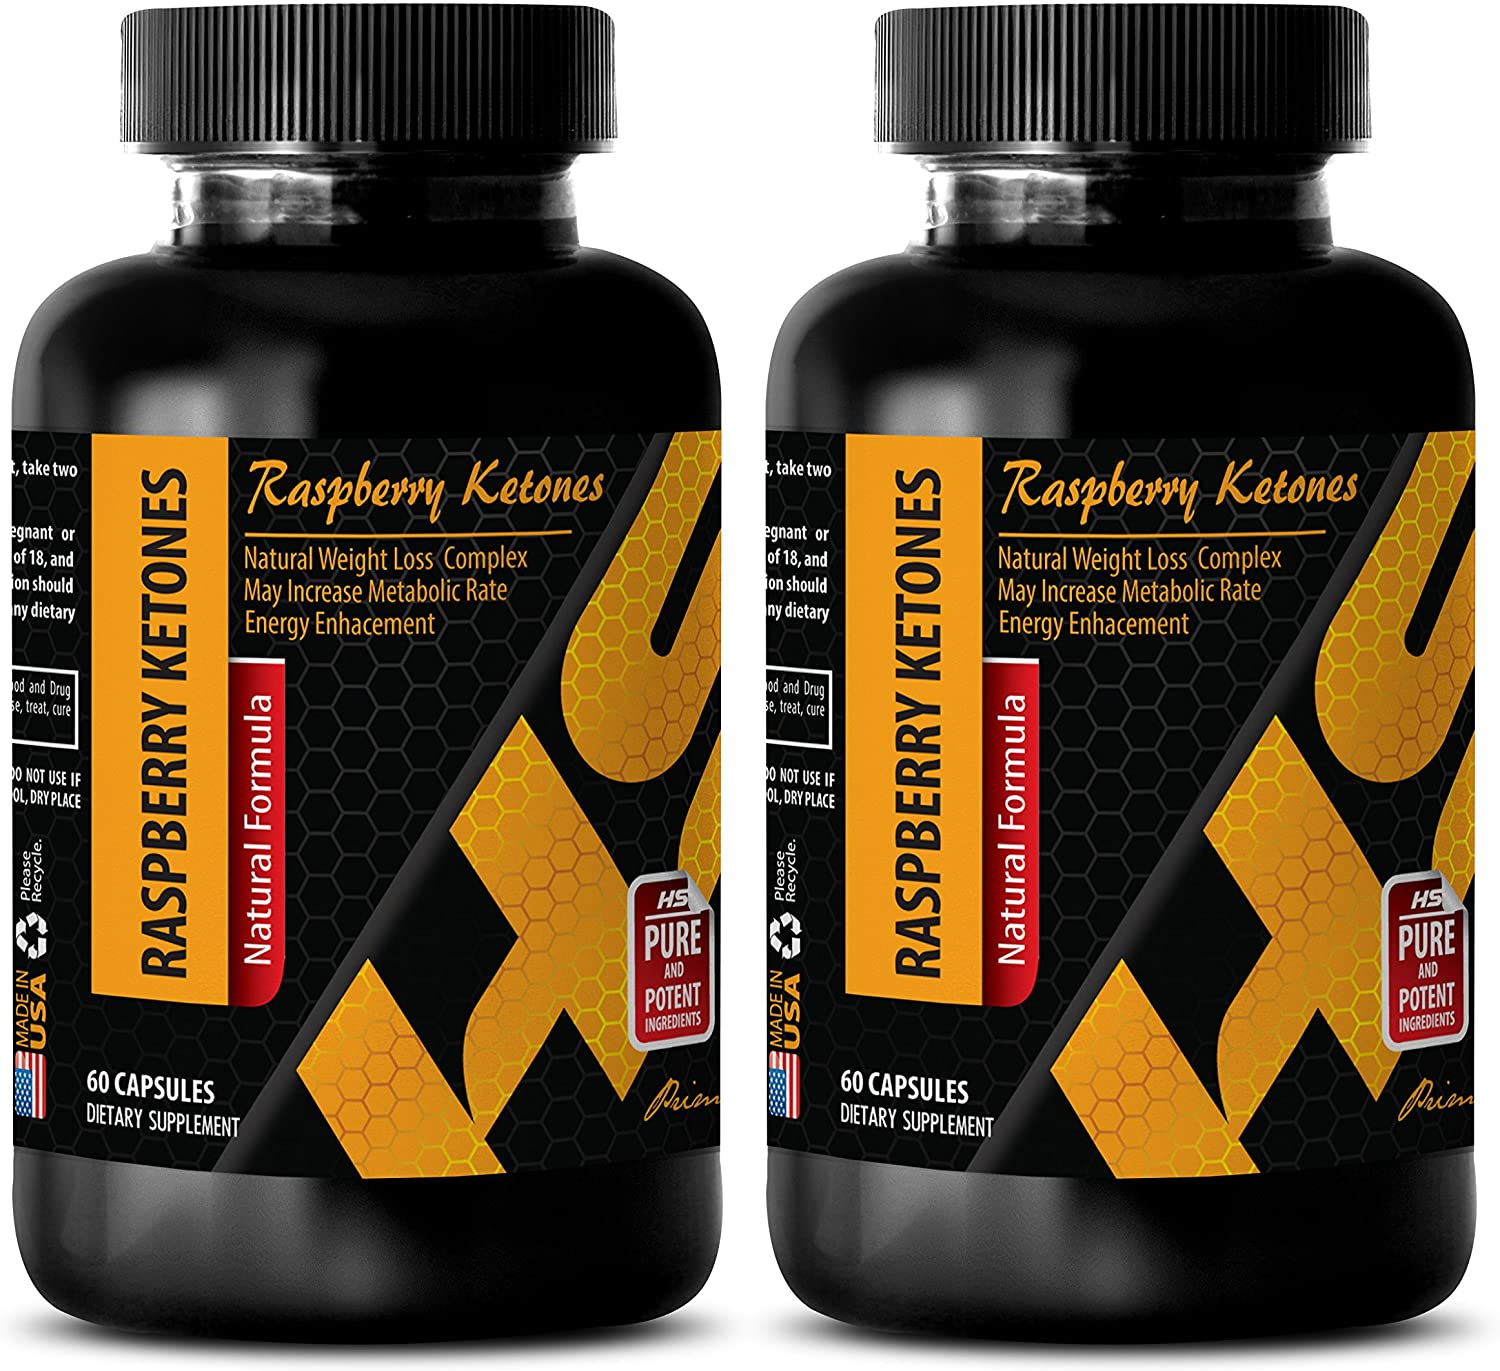 Metabolism and Energy Booster - Natural Raspberry Ketones Lean 1200MG - African Mango Extract - 2 Bottle (120 Capsules)